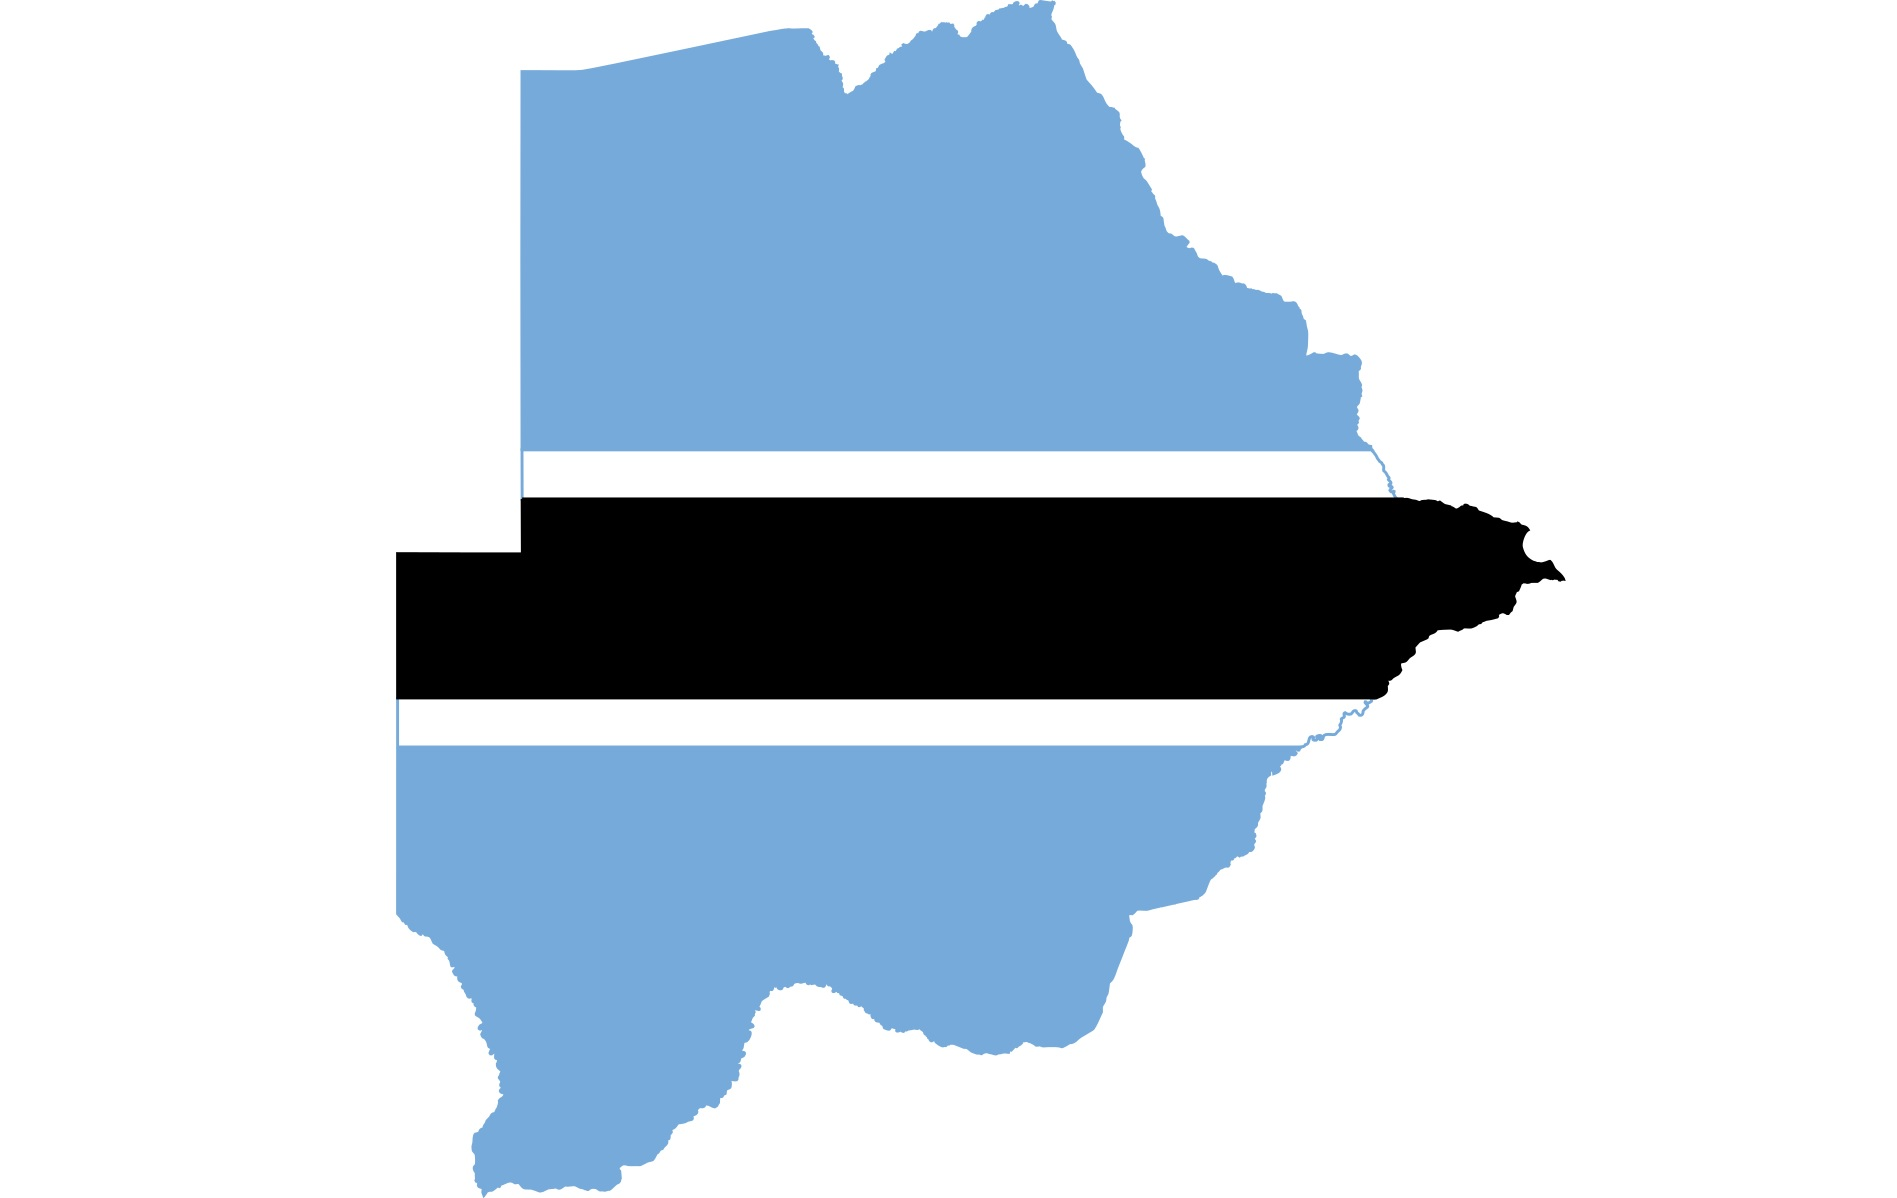 Authorities in Botswana expect the revised tender will go ahead before the end of June (Credit: Wikimedia Commons)